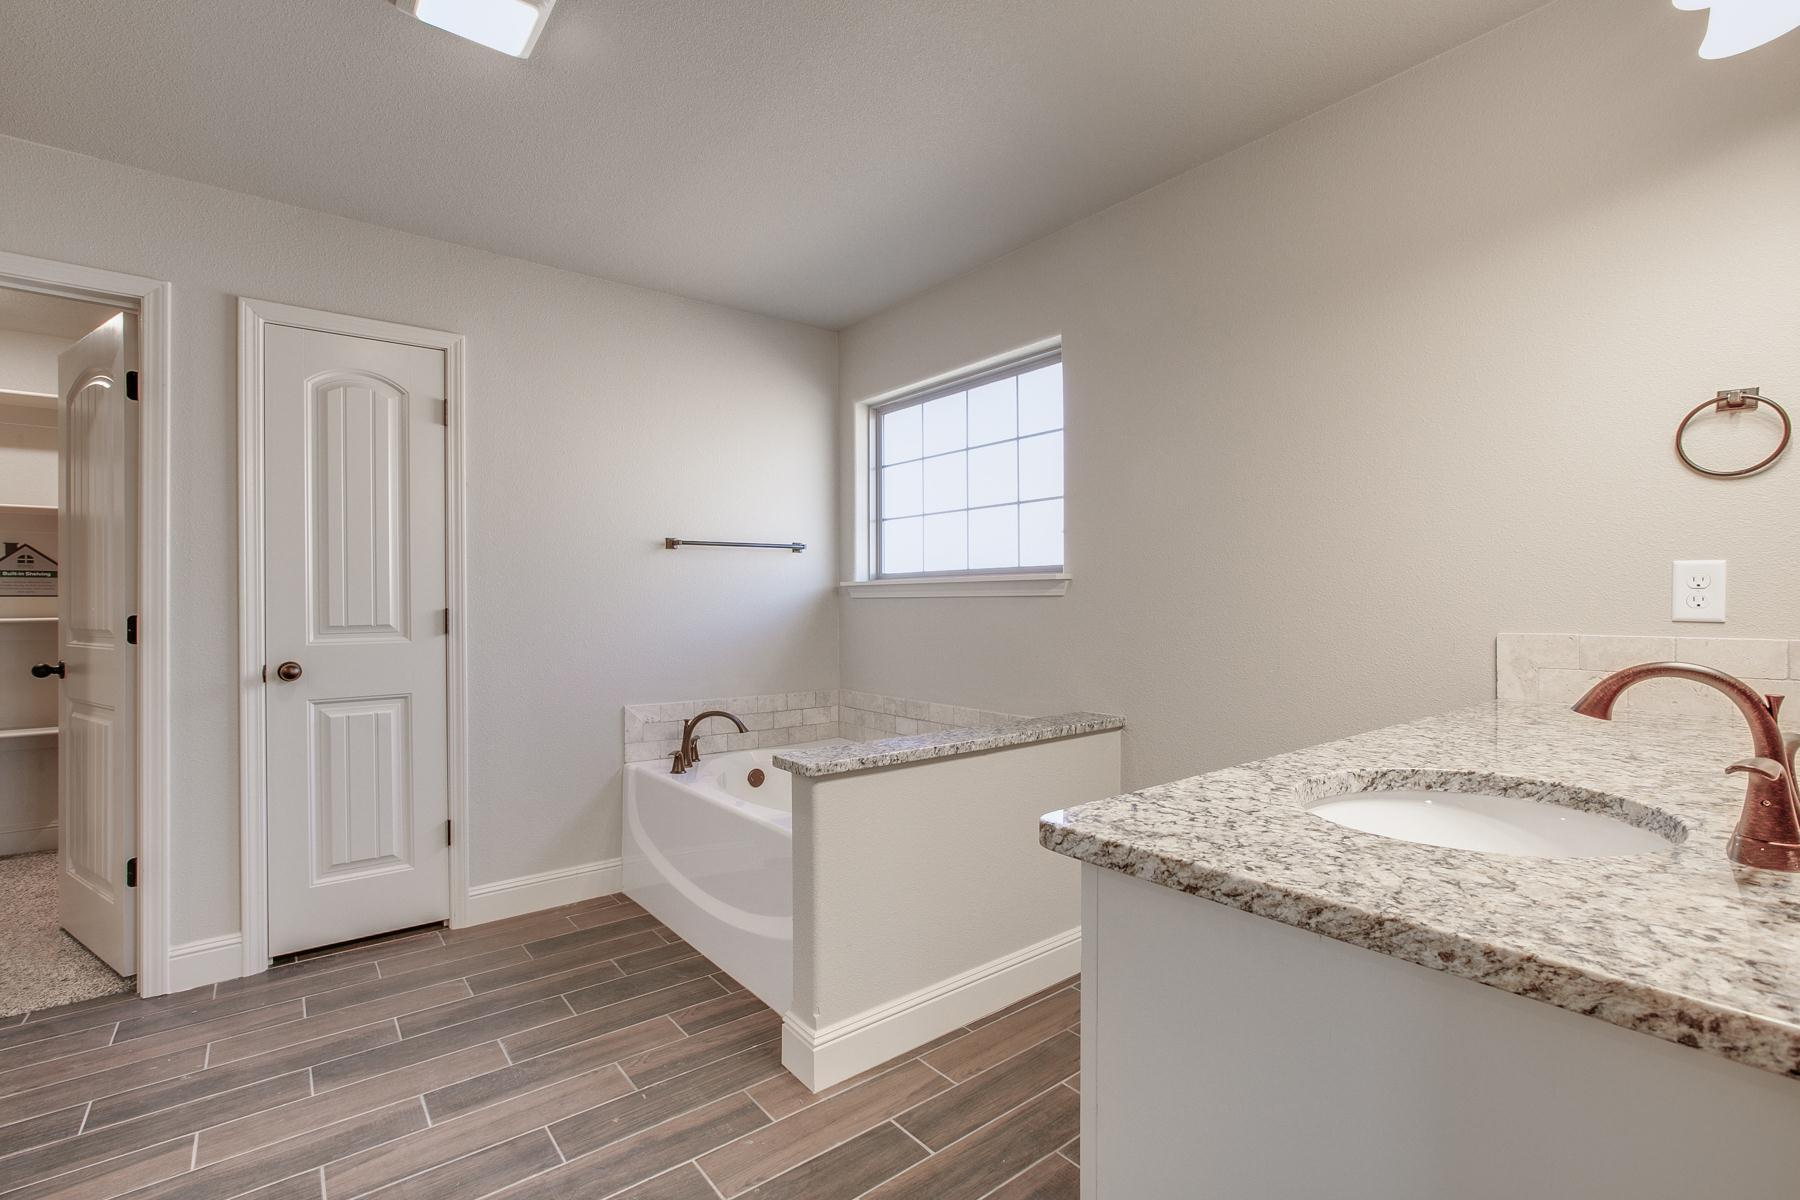 Bathroom featured in the 2300KI Series By Schuber Mitchell Homes in Joplin, MO